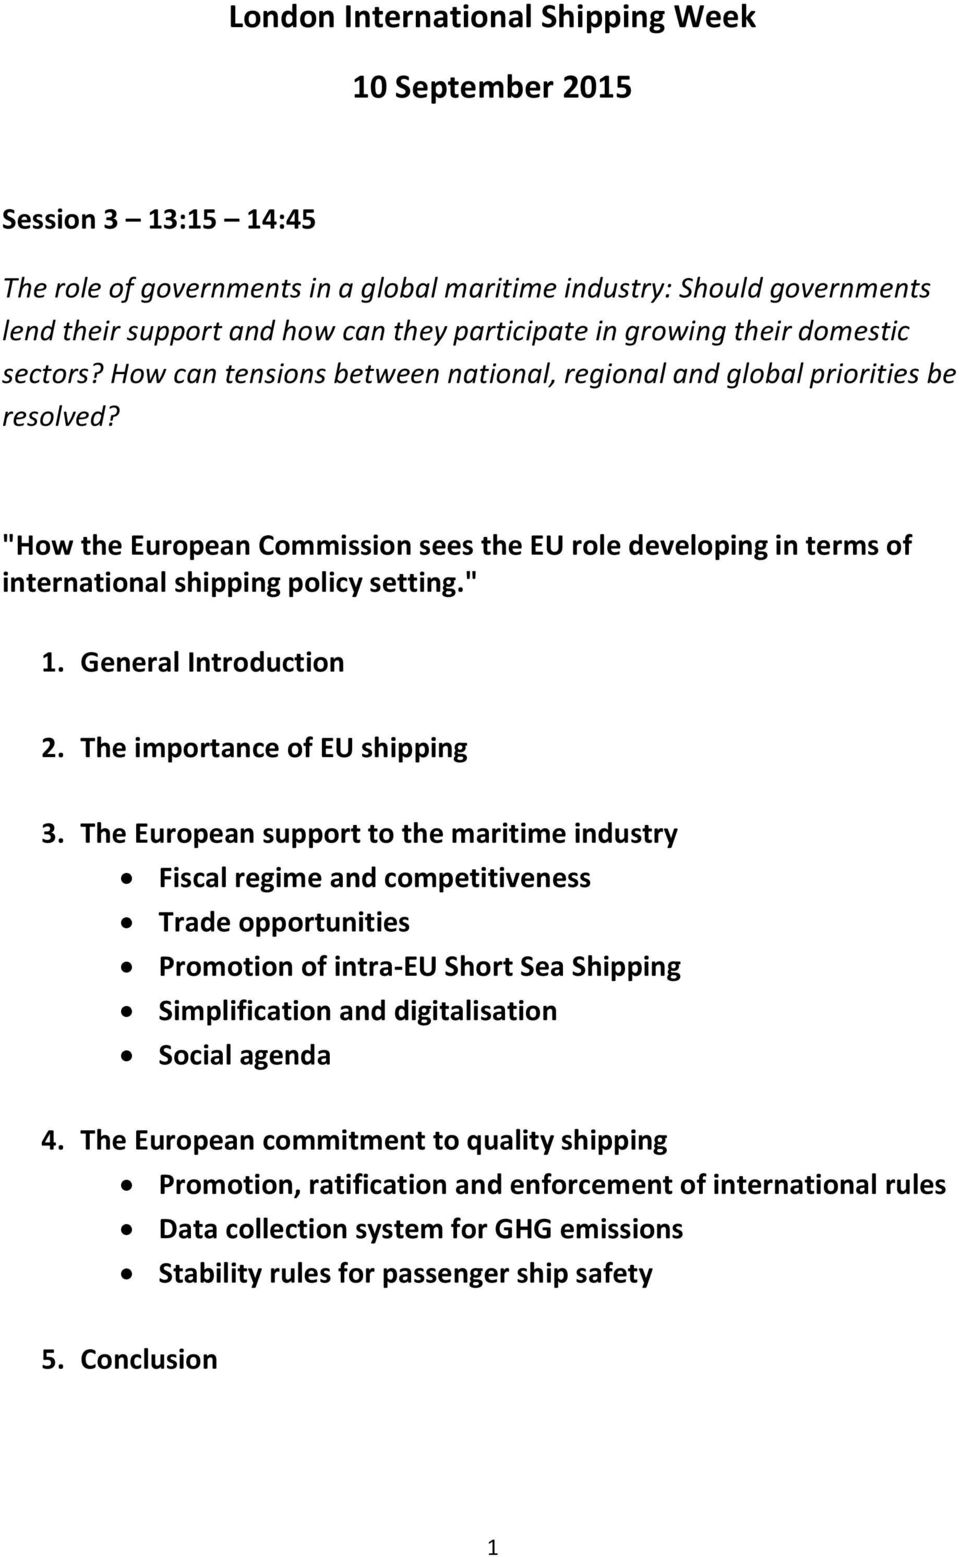 """How the European Commission sees the EU role developing in terms of international shipping policy setting."" 1. General Introduction 2. The importance of EU shipping 3."